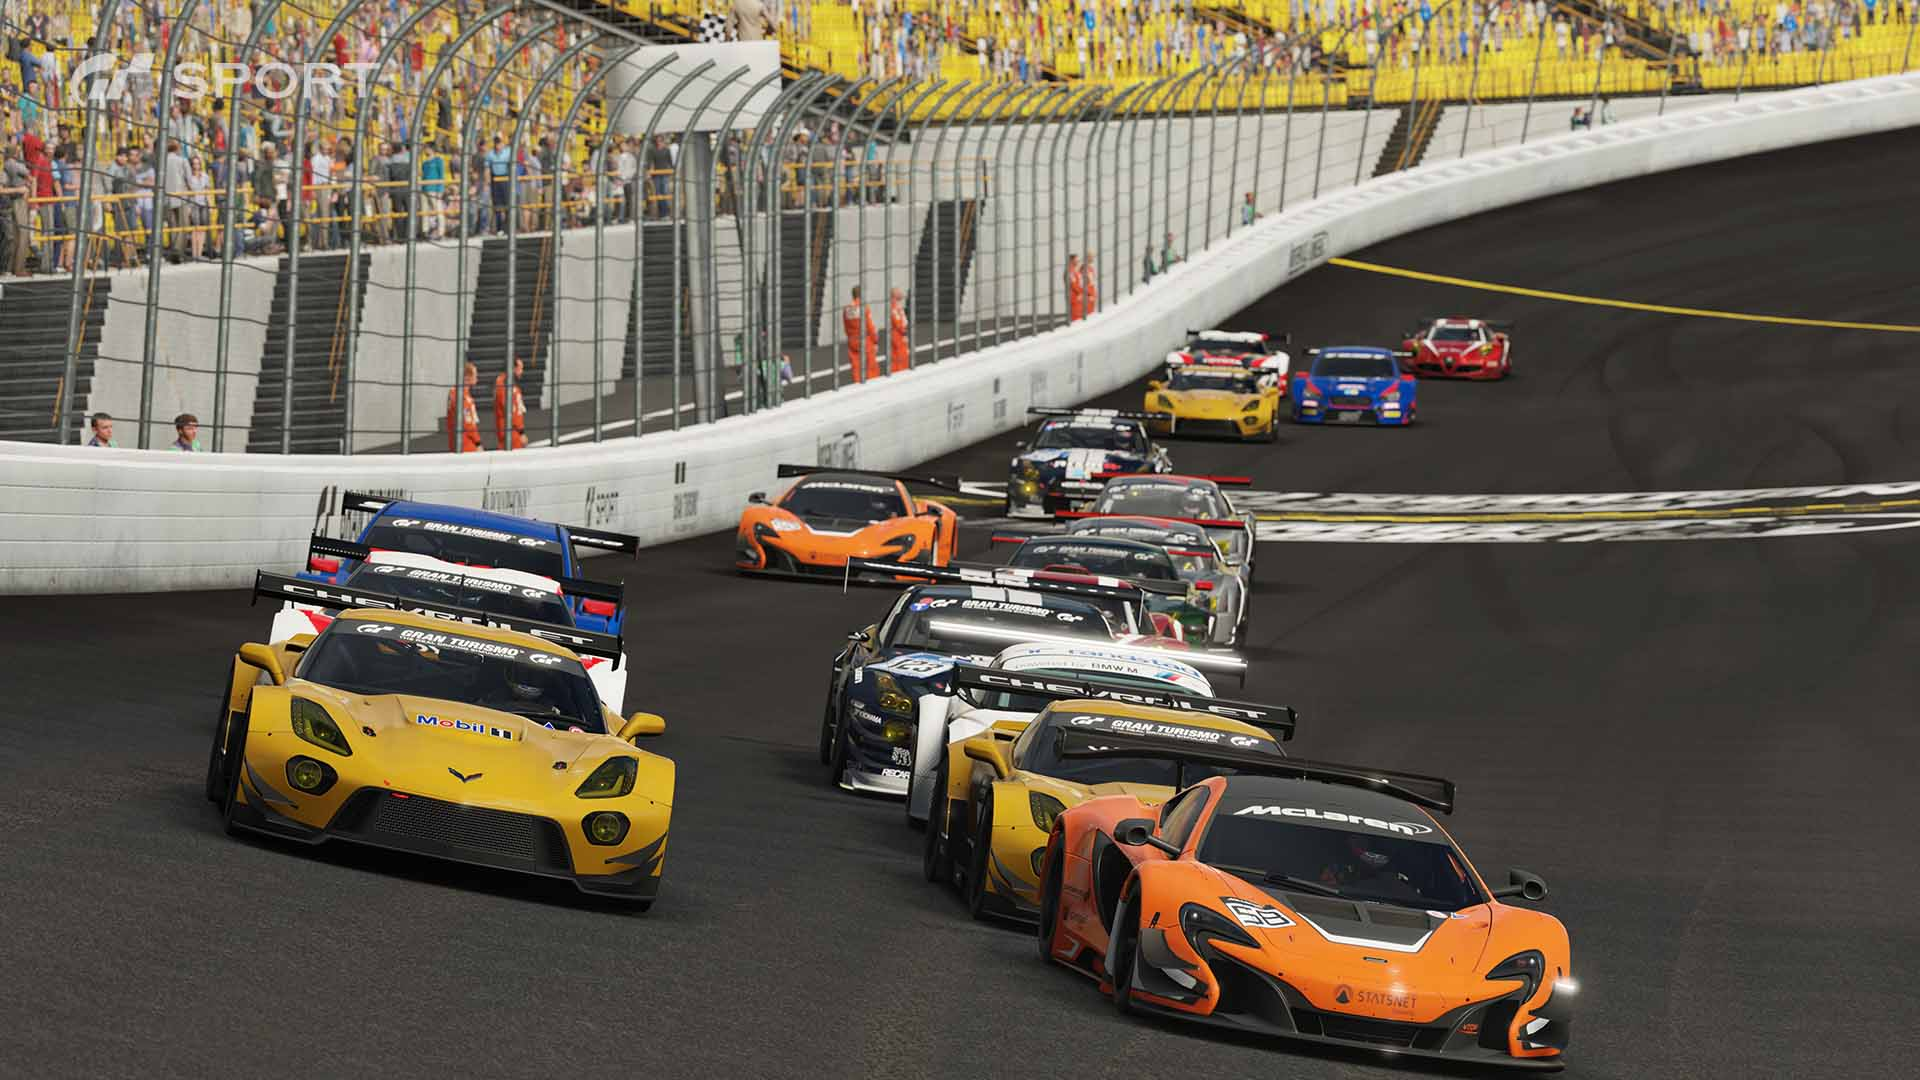 Gran Turismo Sport racing grid on oval track